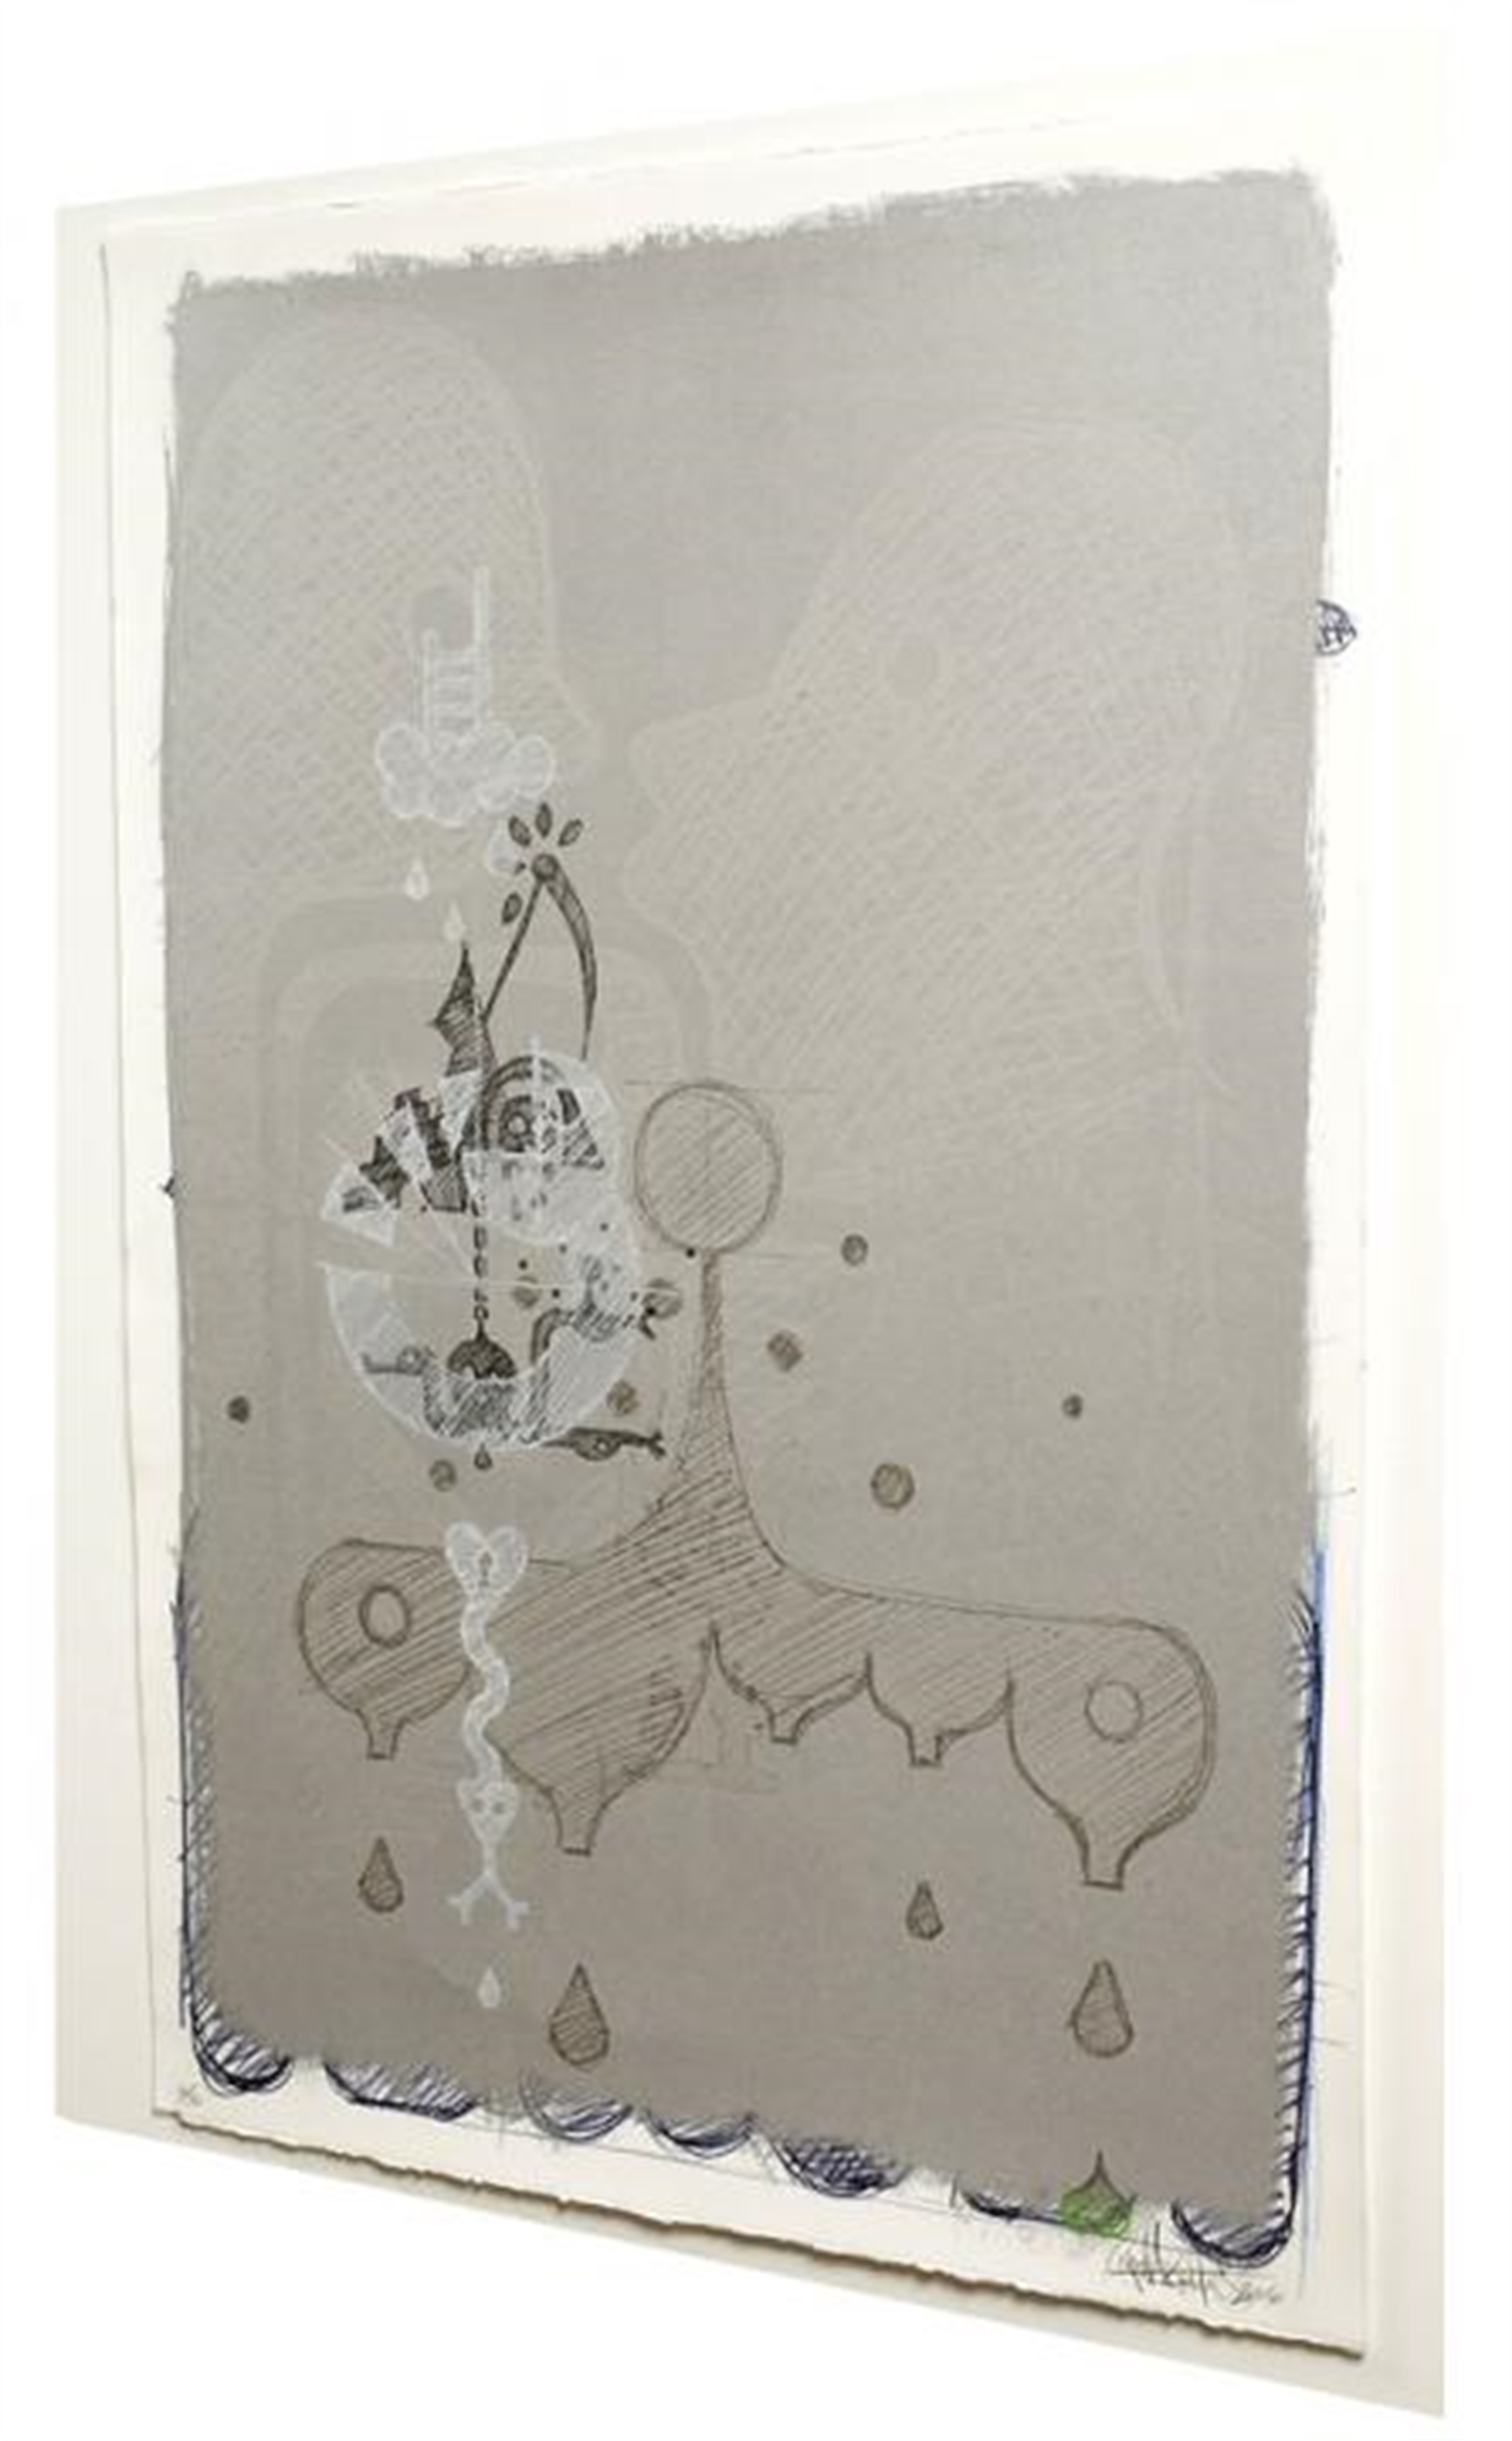 Untitled (Sketch Process) by Ryan McGinness